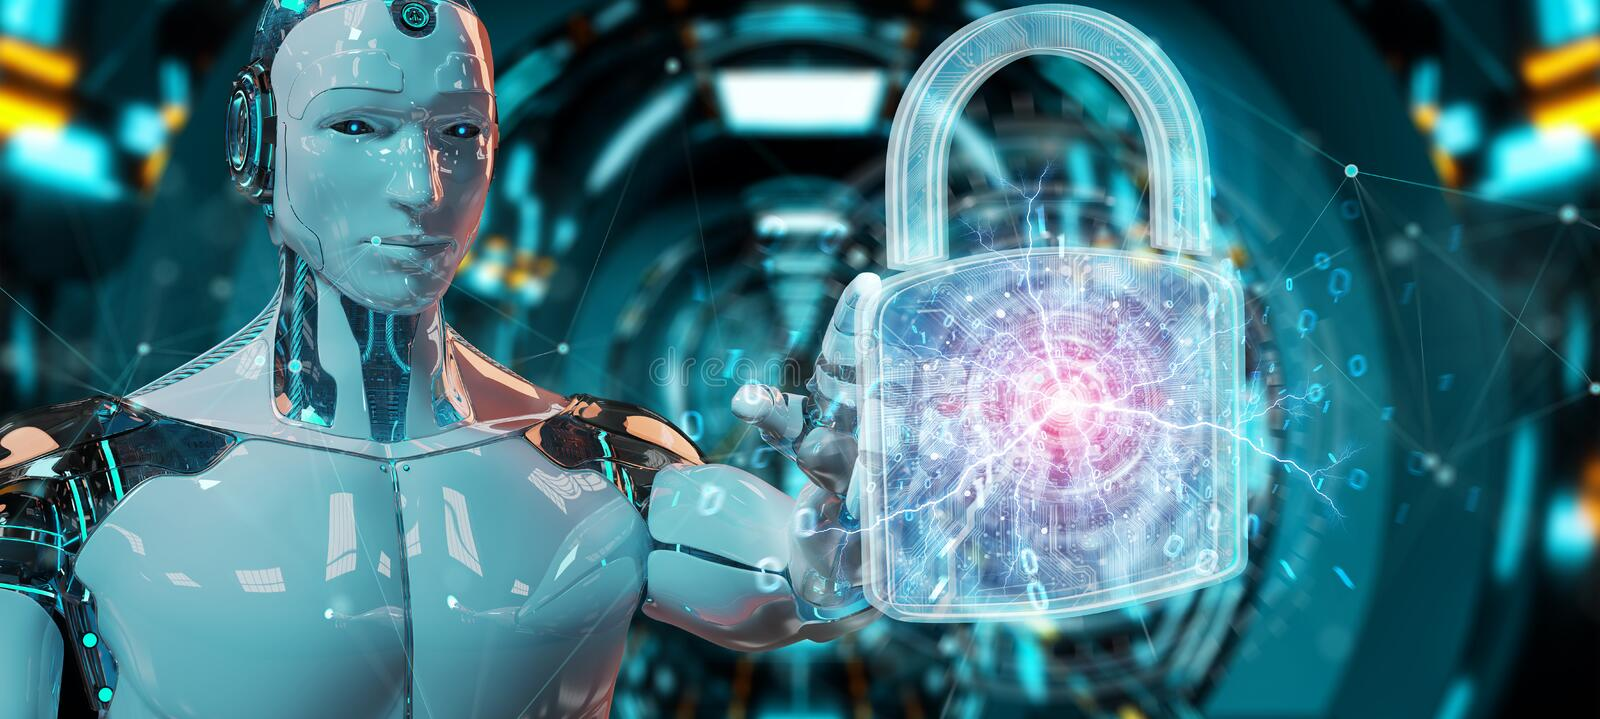 Web security protection interface used by robot 3D rendering. Web security protection interface used by robot on blurred background 3D rendering royalty free illustration